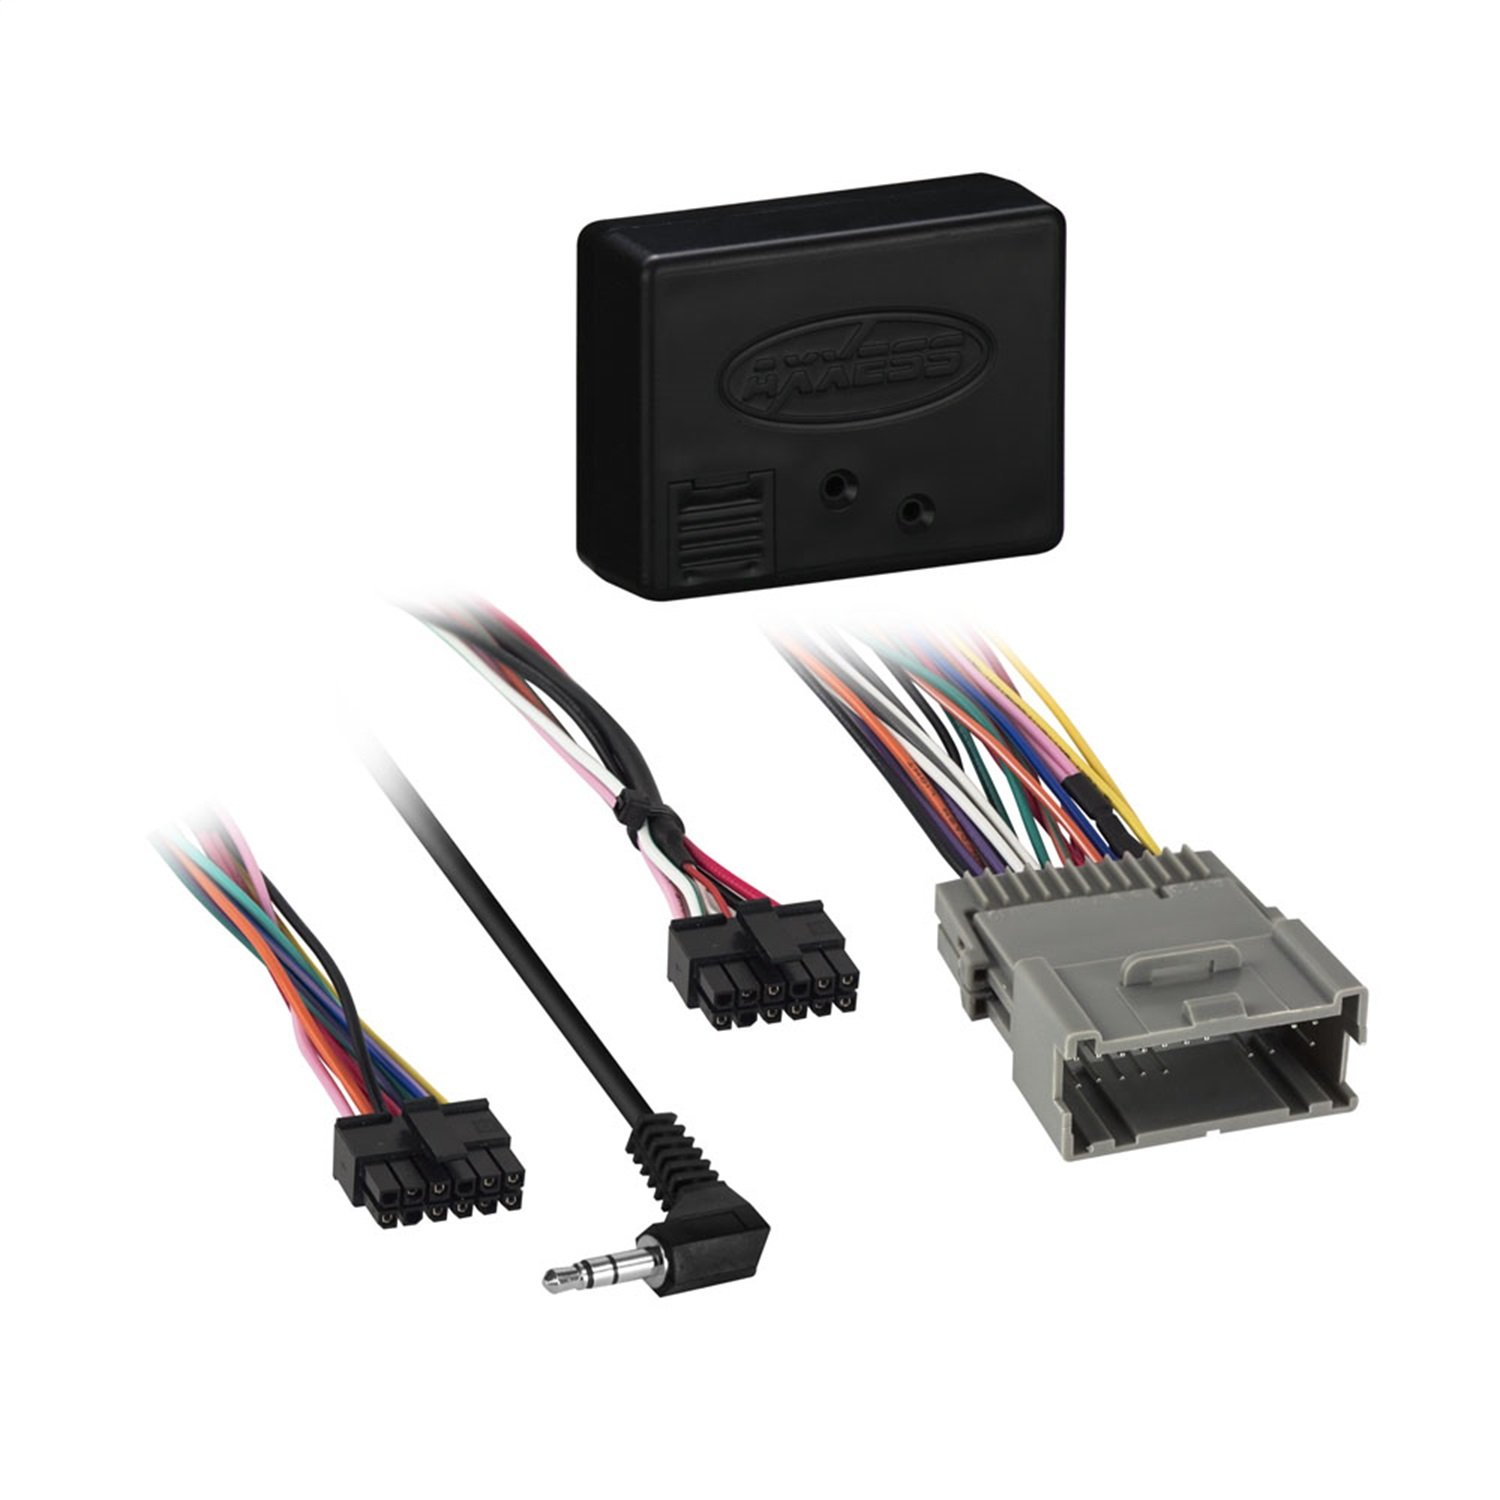 Axxess Xsvi 2003 Nav Non Amplified Onstar Harness Metra Gmos04 Wiring Interface Connect A New Car Stereo And Retain Electronics